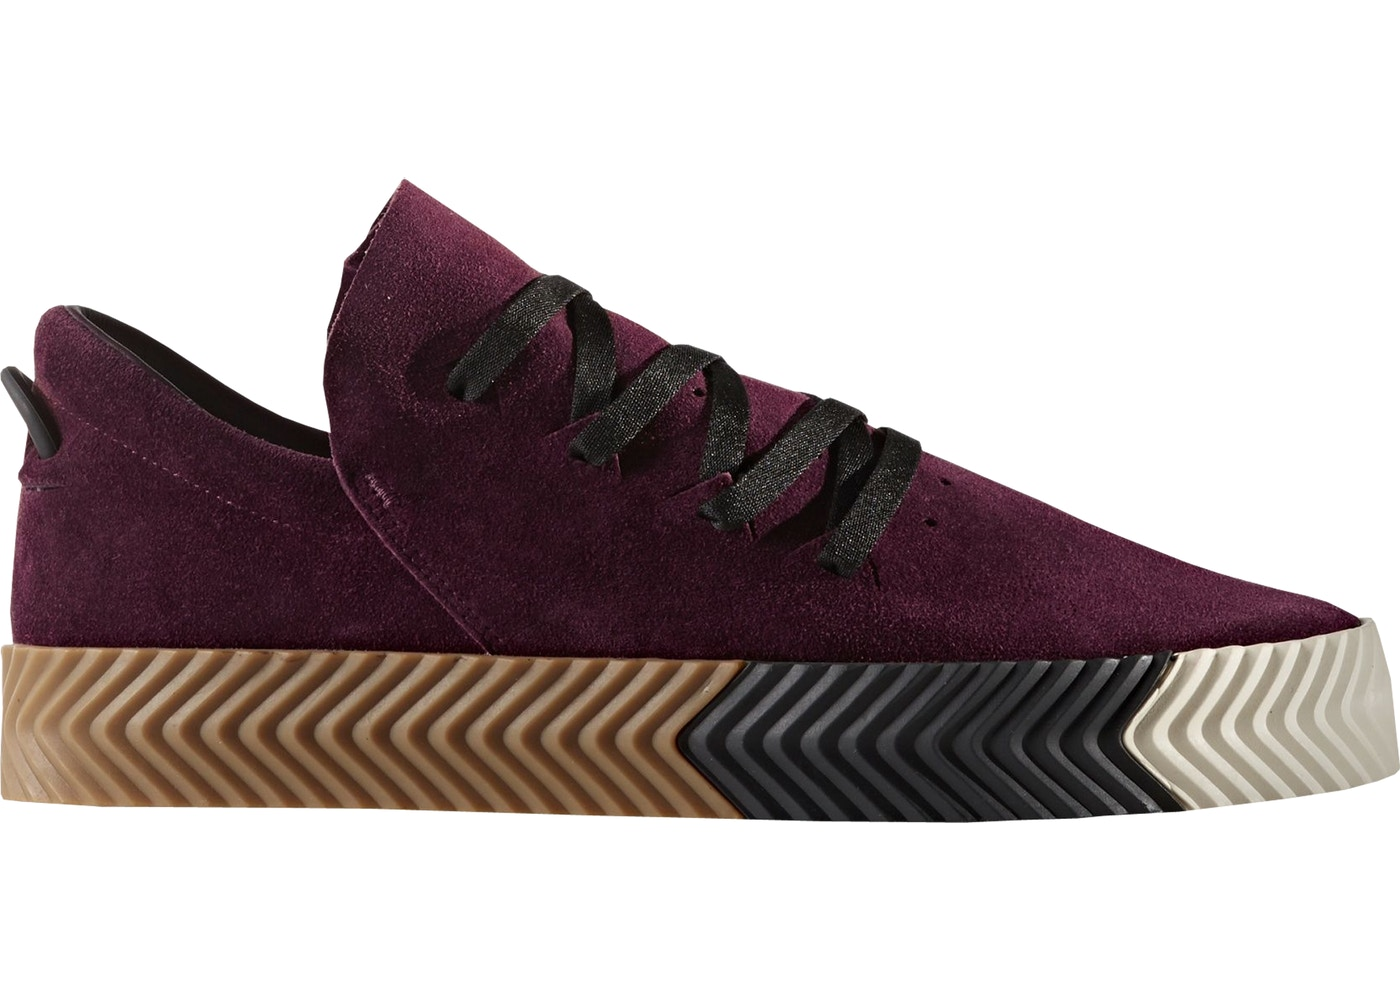 7c6bf4b9 Sell. or Ask. Size 9. View All Bids. adidas AW Skate Alexander Wang Maroon